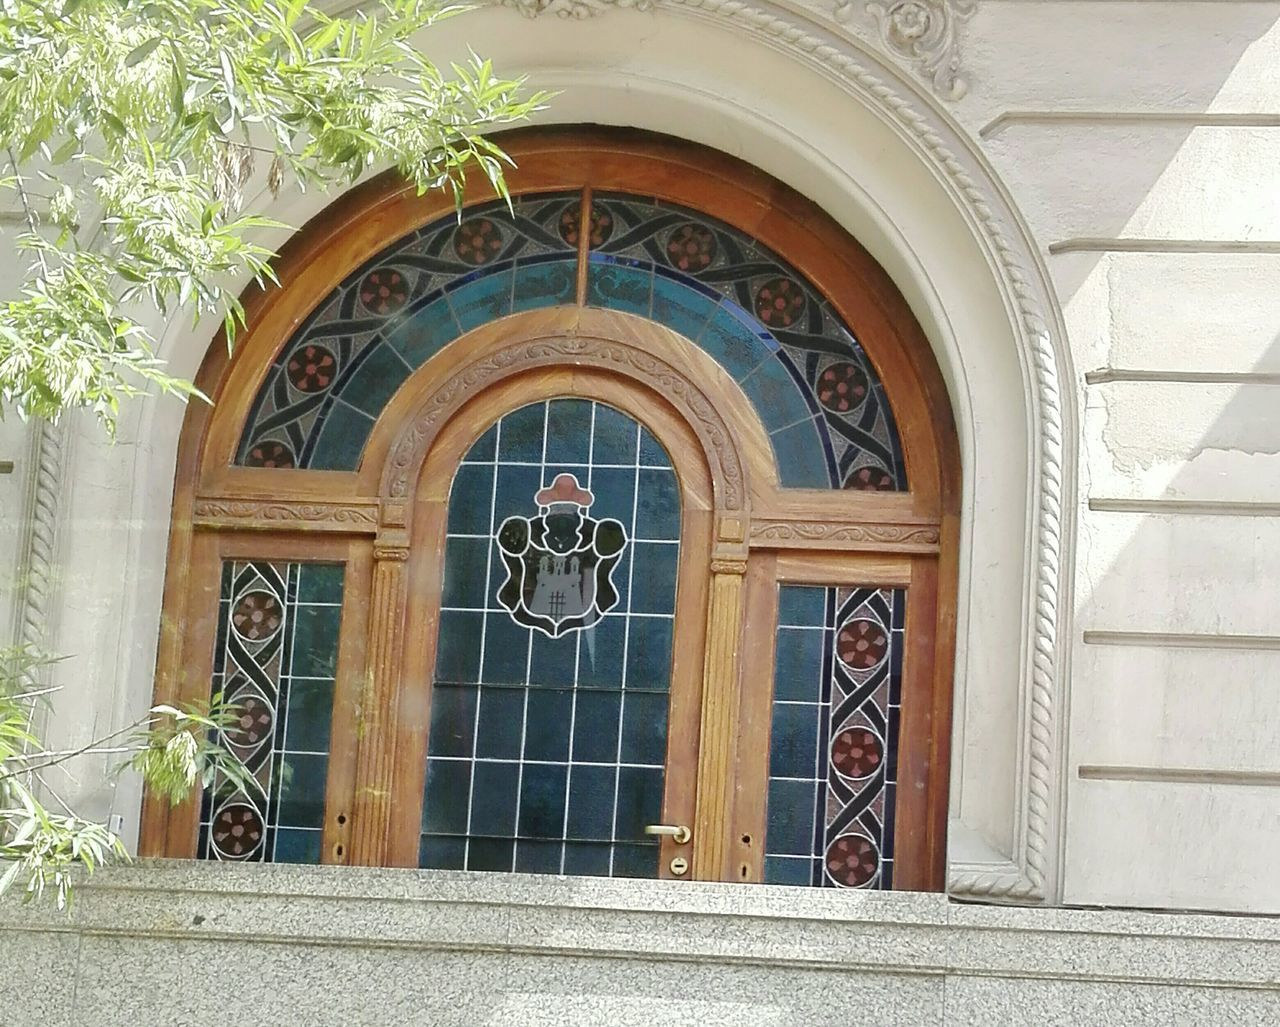 architecture, built structure, door, window, arch, entrance, building exterior, day, no people, outdoors